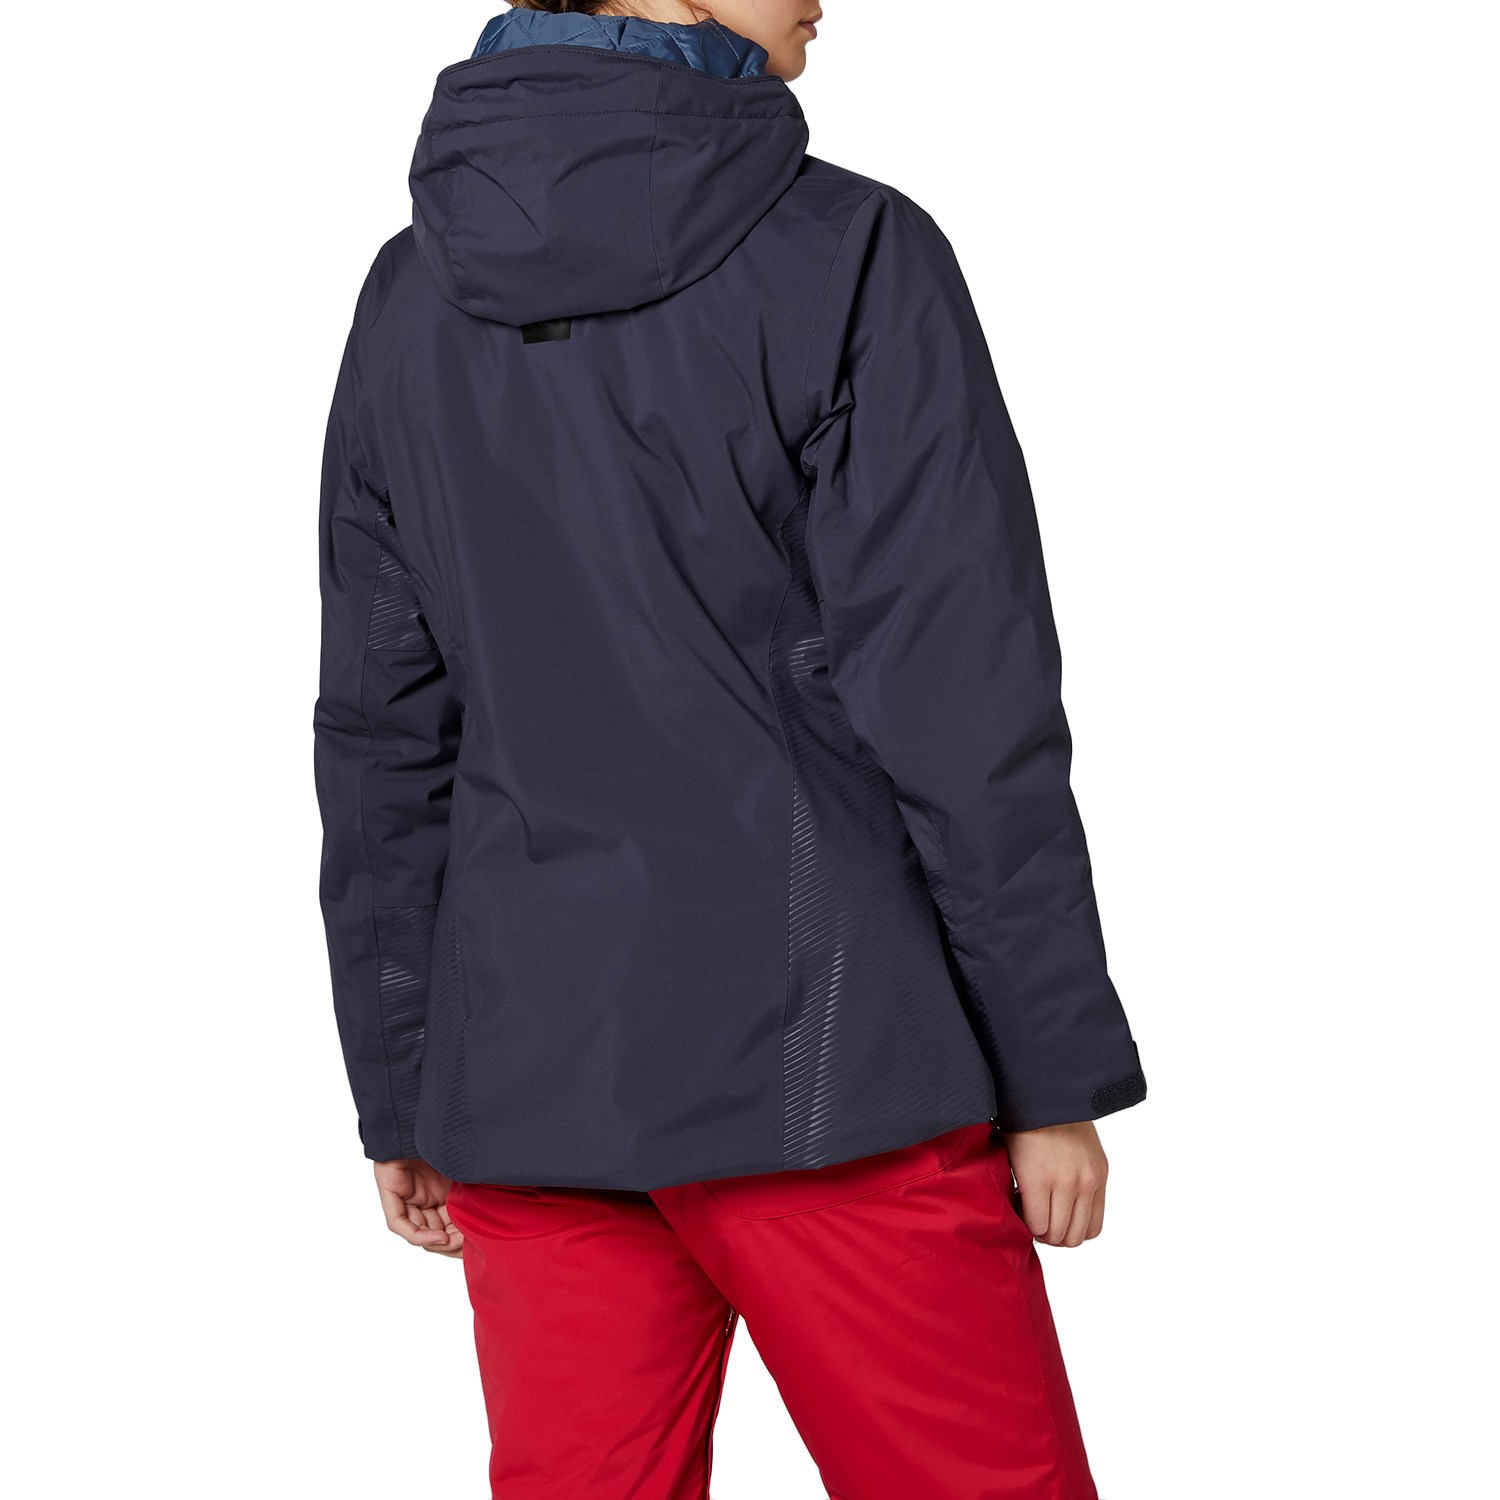 Helly hansen sunvalley jacket womens evo jpg 1500x1500 How much are helly  hansen jackets 84a67987c